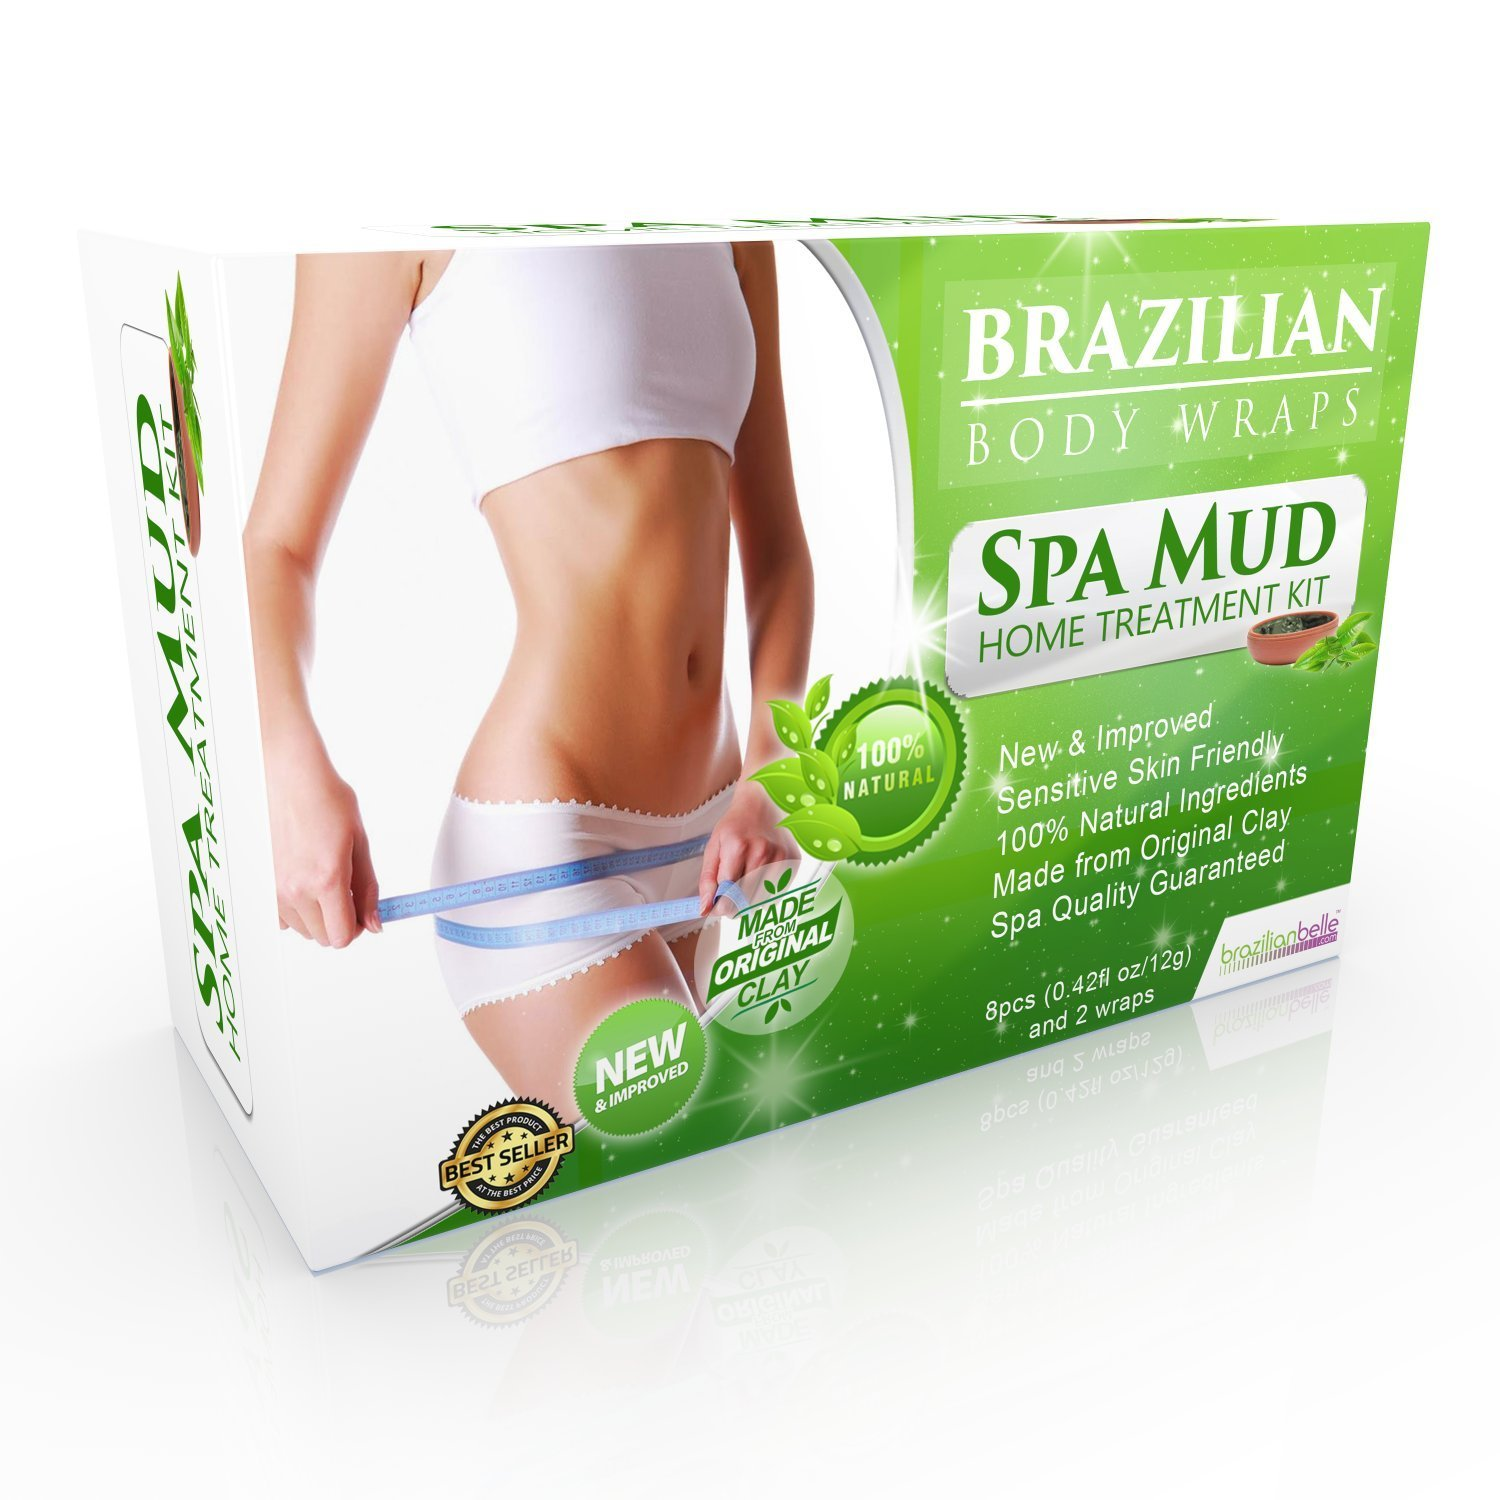 2dde518cd8 Get Quotations · Brazilian Body Wraps - Spa Mud Home Treatment Kit for  Women Slimming Home Spa Treatment for